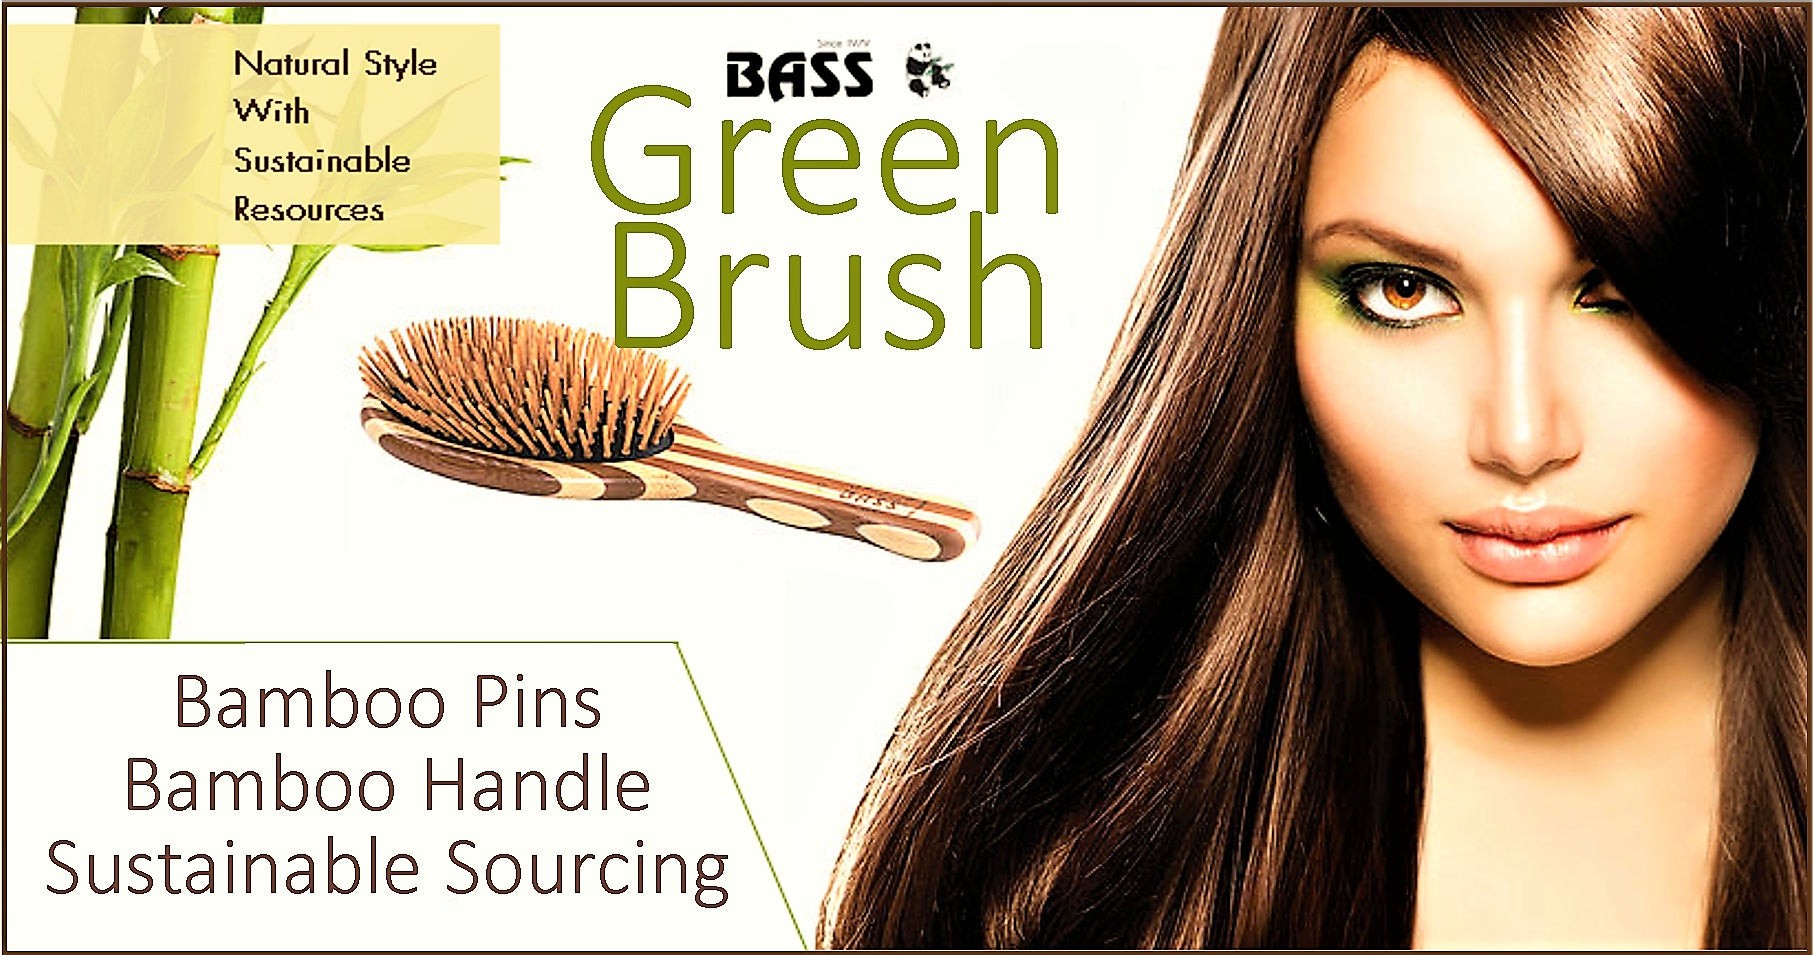 BASS 15 – SMALL OVAL HAIR BRUSH. BAMBOO BRISTLE - Greenhouse Marketing (My Natural Choice)